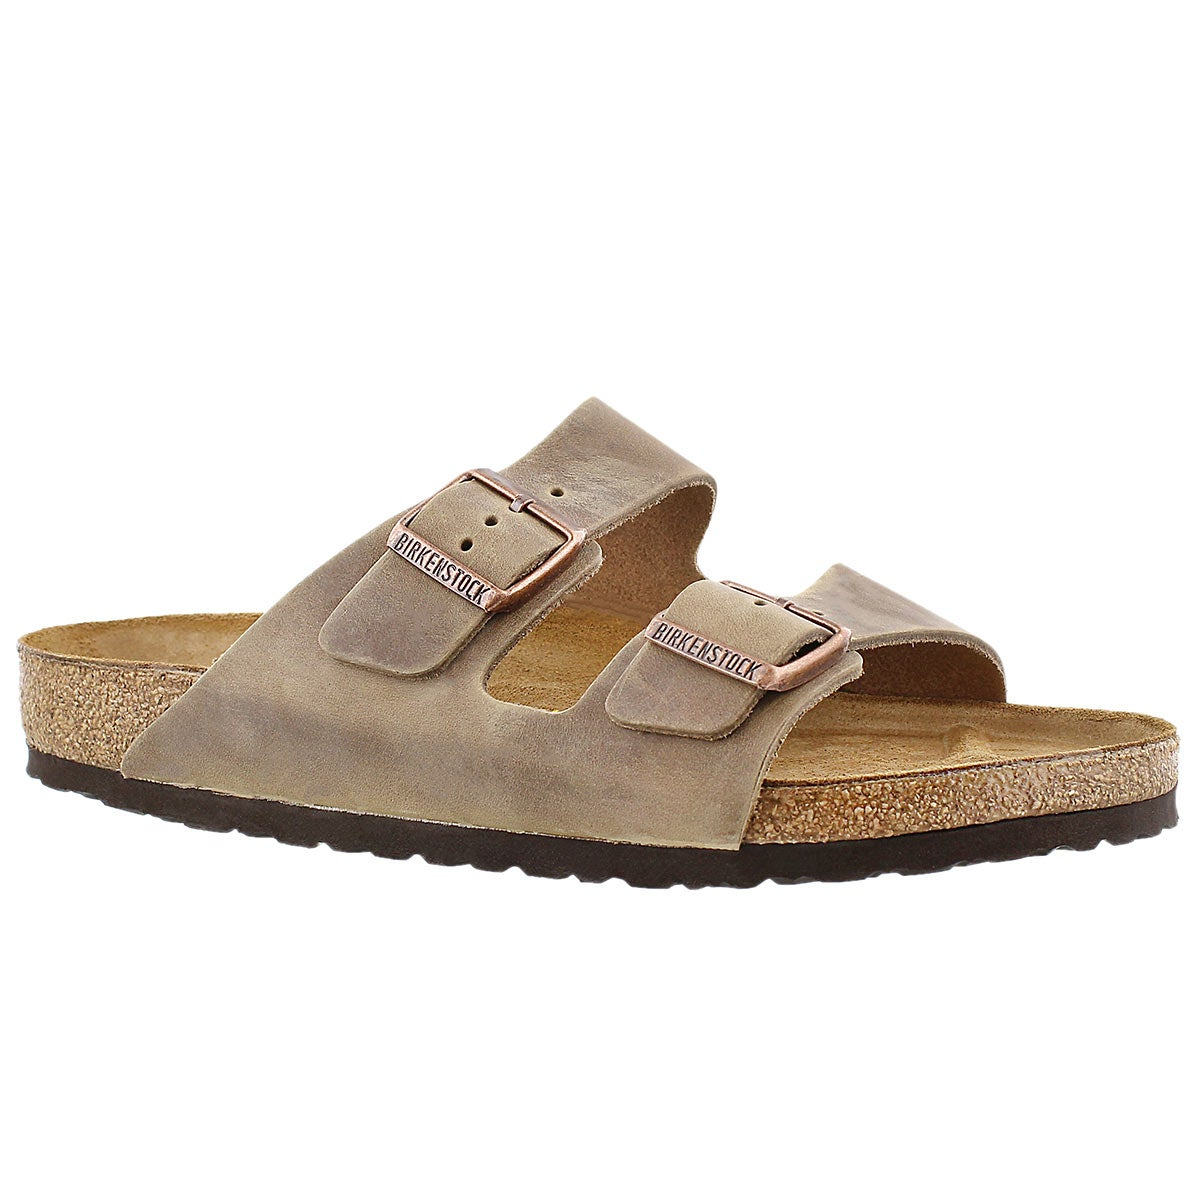 Men's ARIZONA tobacco 2 strap sandals